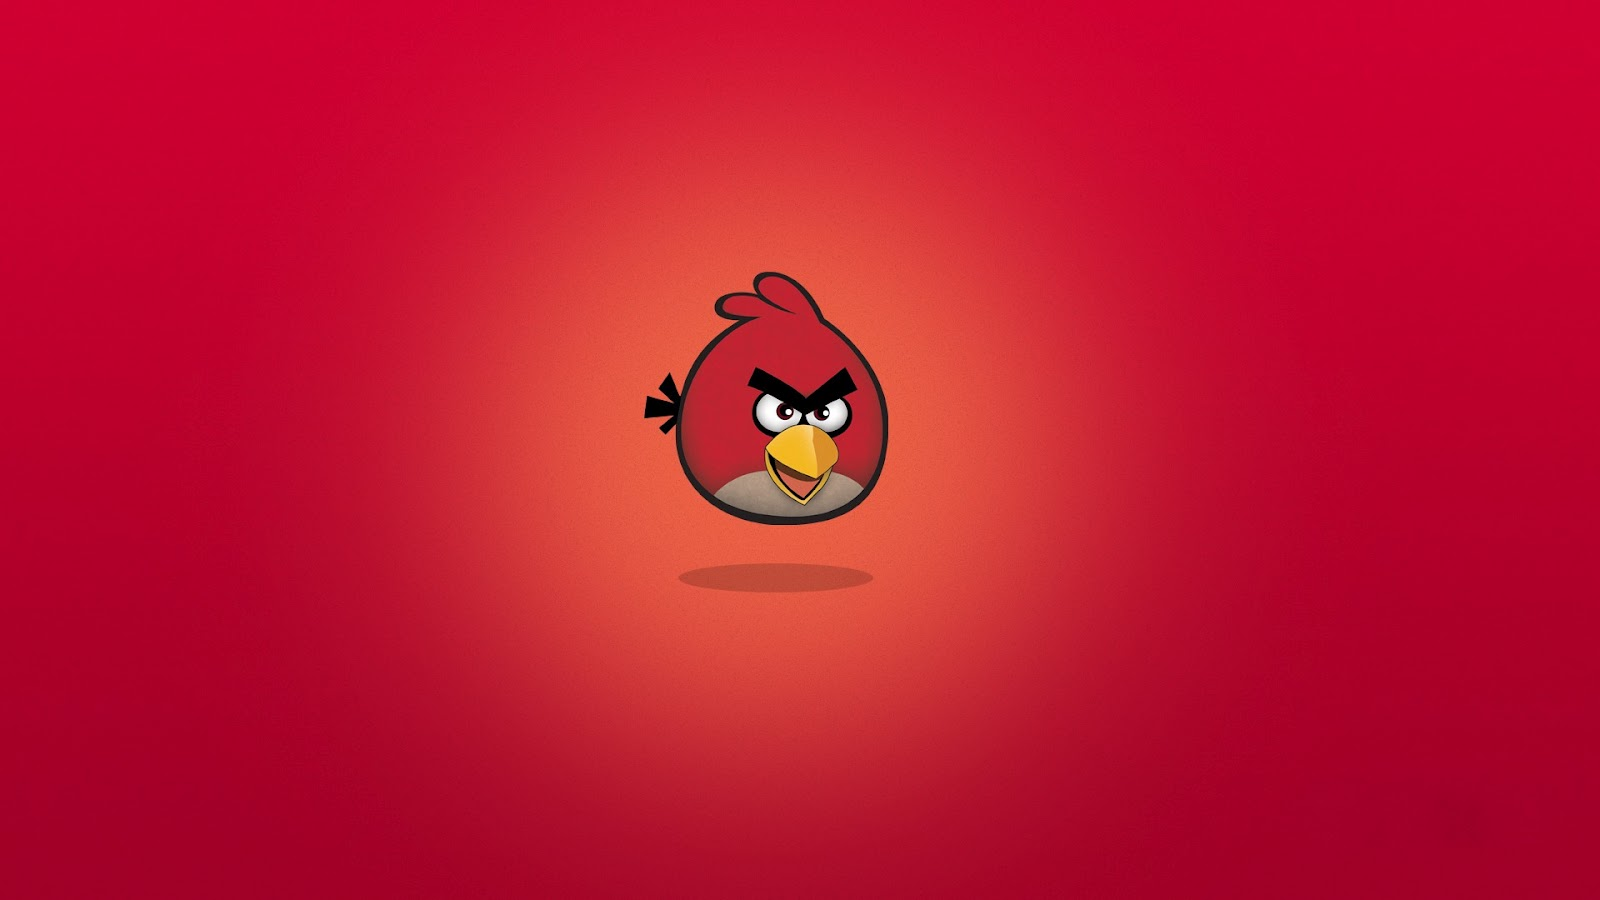 Angry Birds HD Wallpapers - DezignHD - Best Source for ...